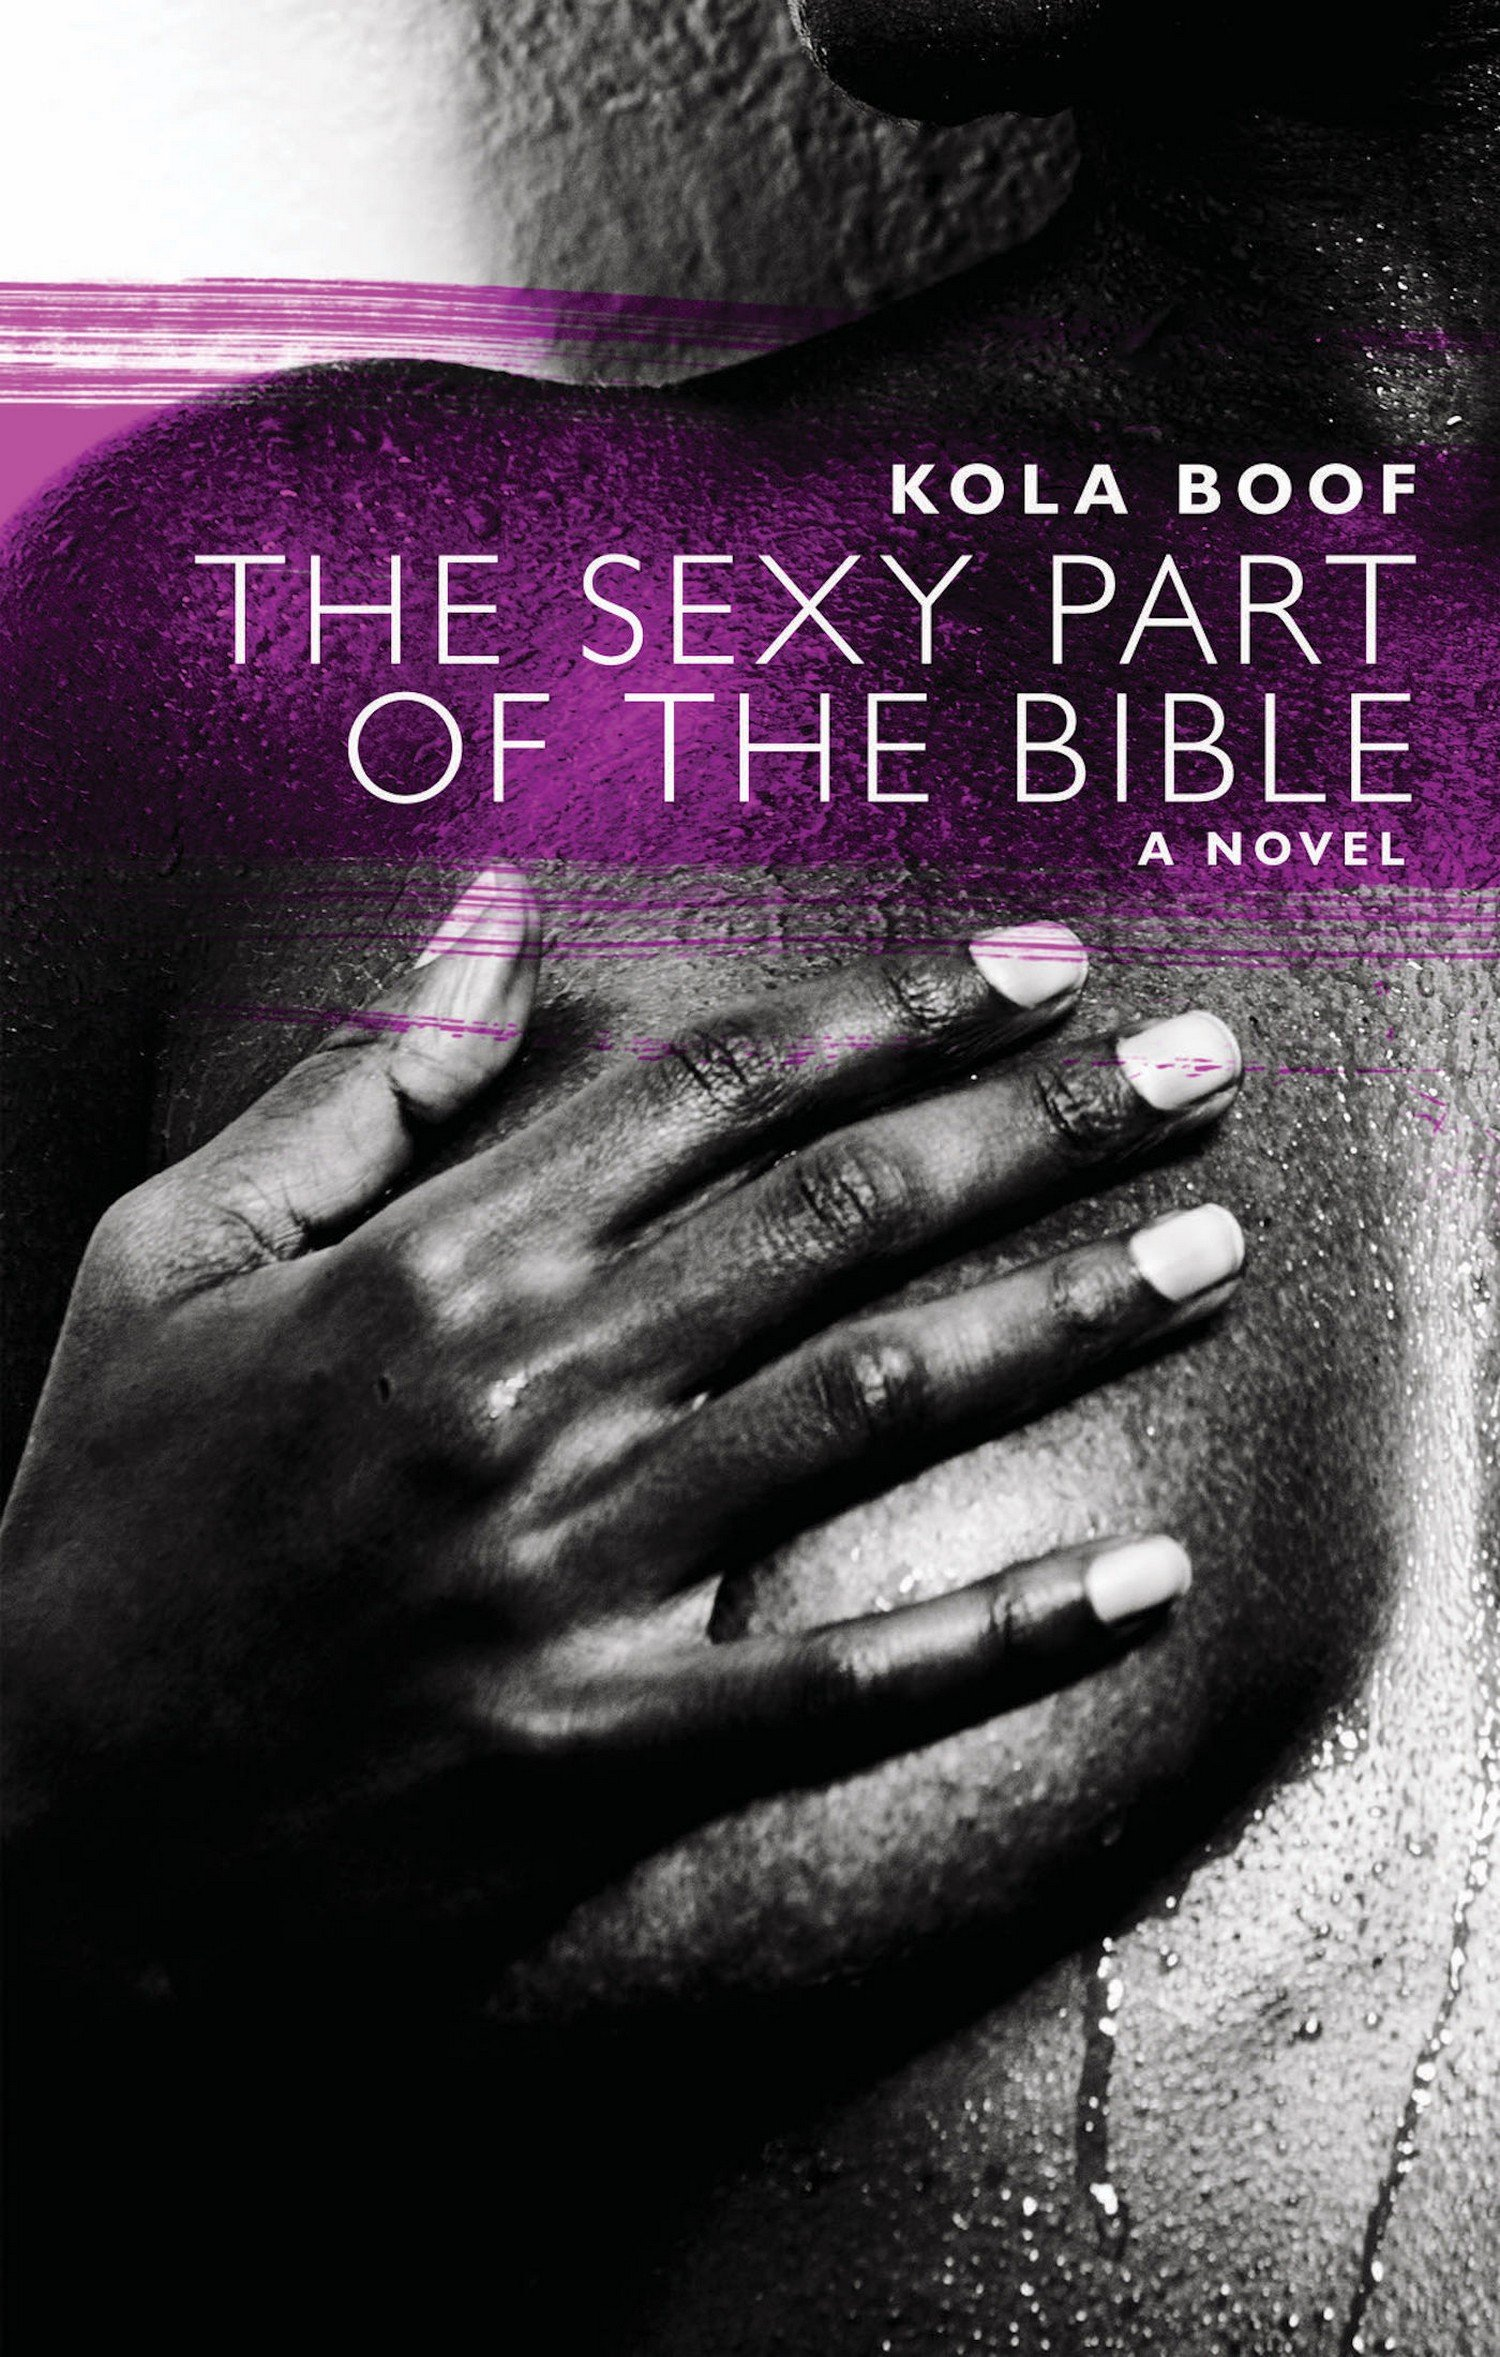 The Sexy Part of the Bible (Akashic Urban Surreal Series)